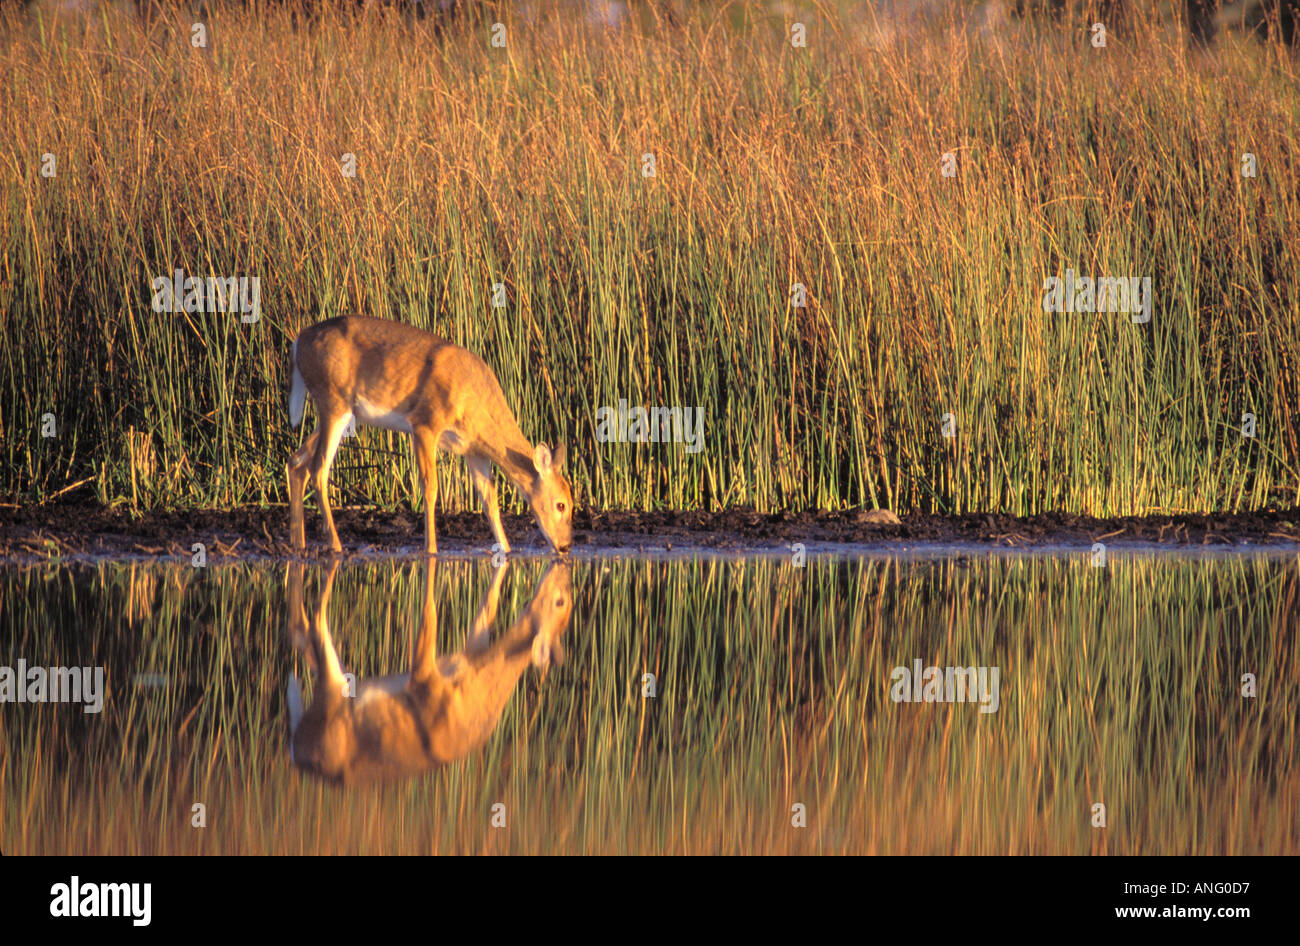 Whitetail deer drinking from a prairie pothole wetland at Goose Lake Prairie State Natural Area Illinois - Stock Image